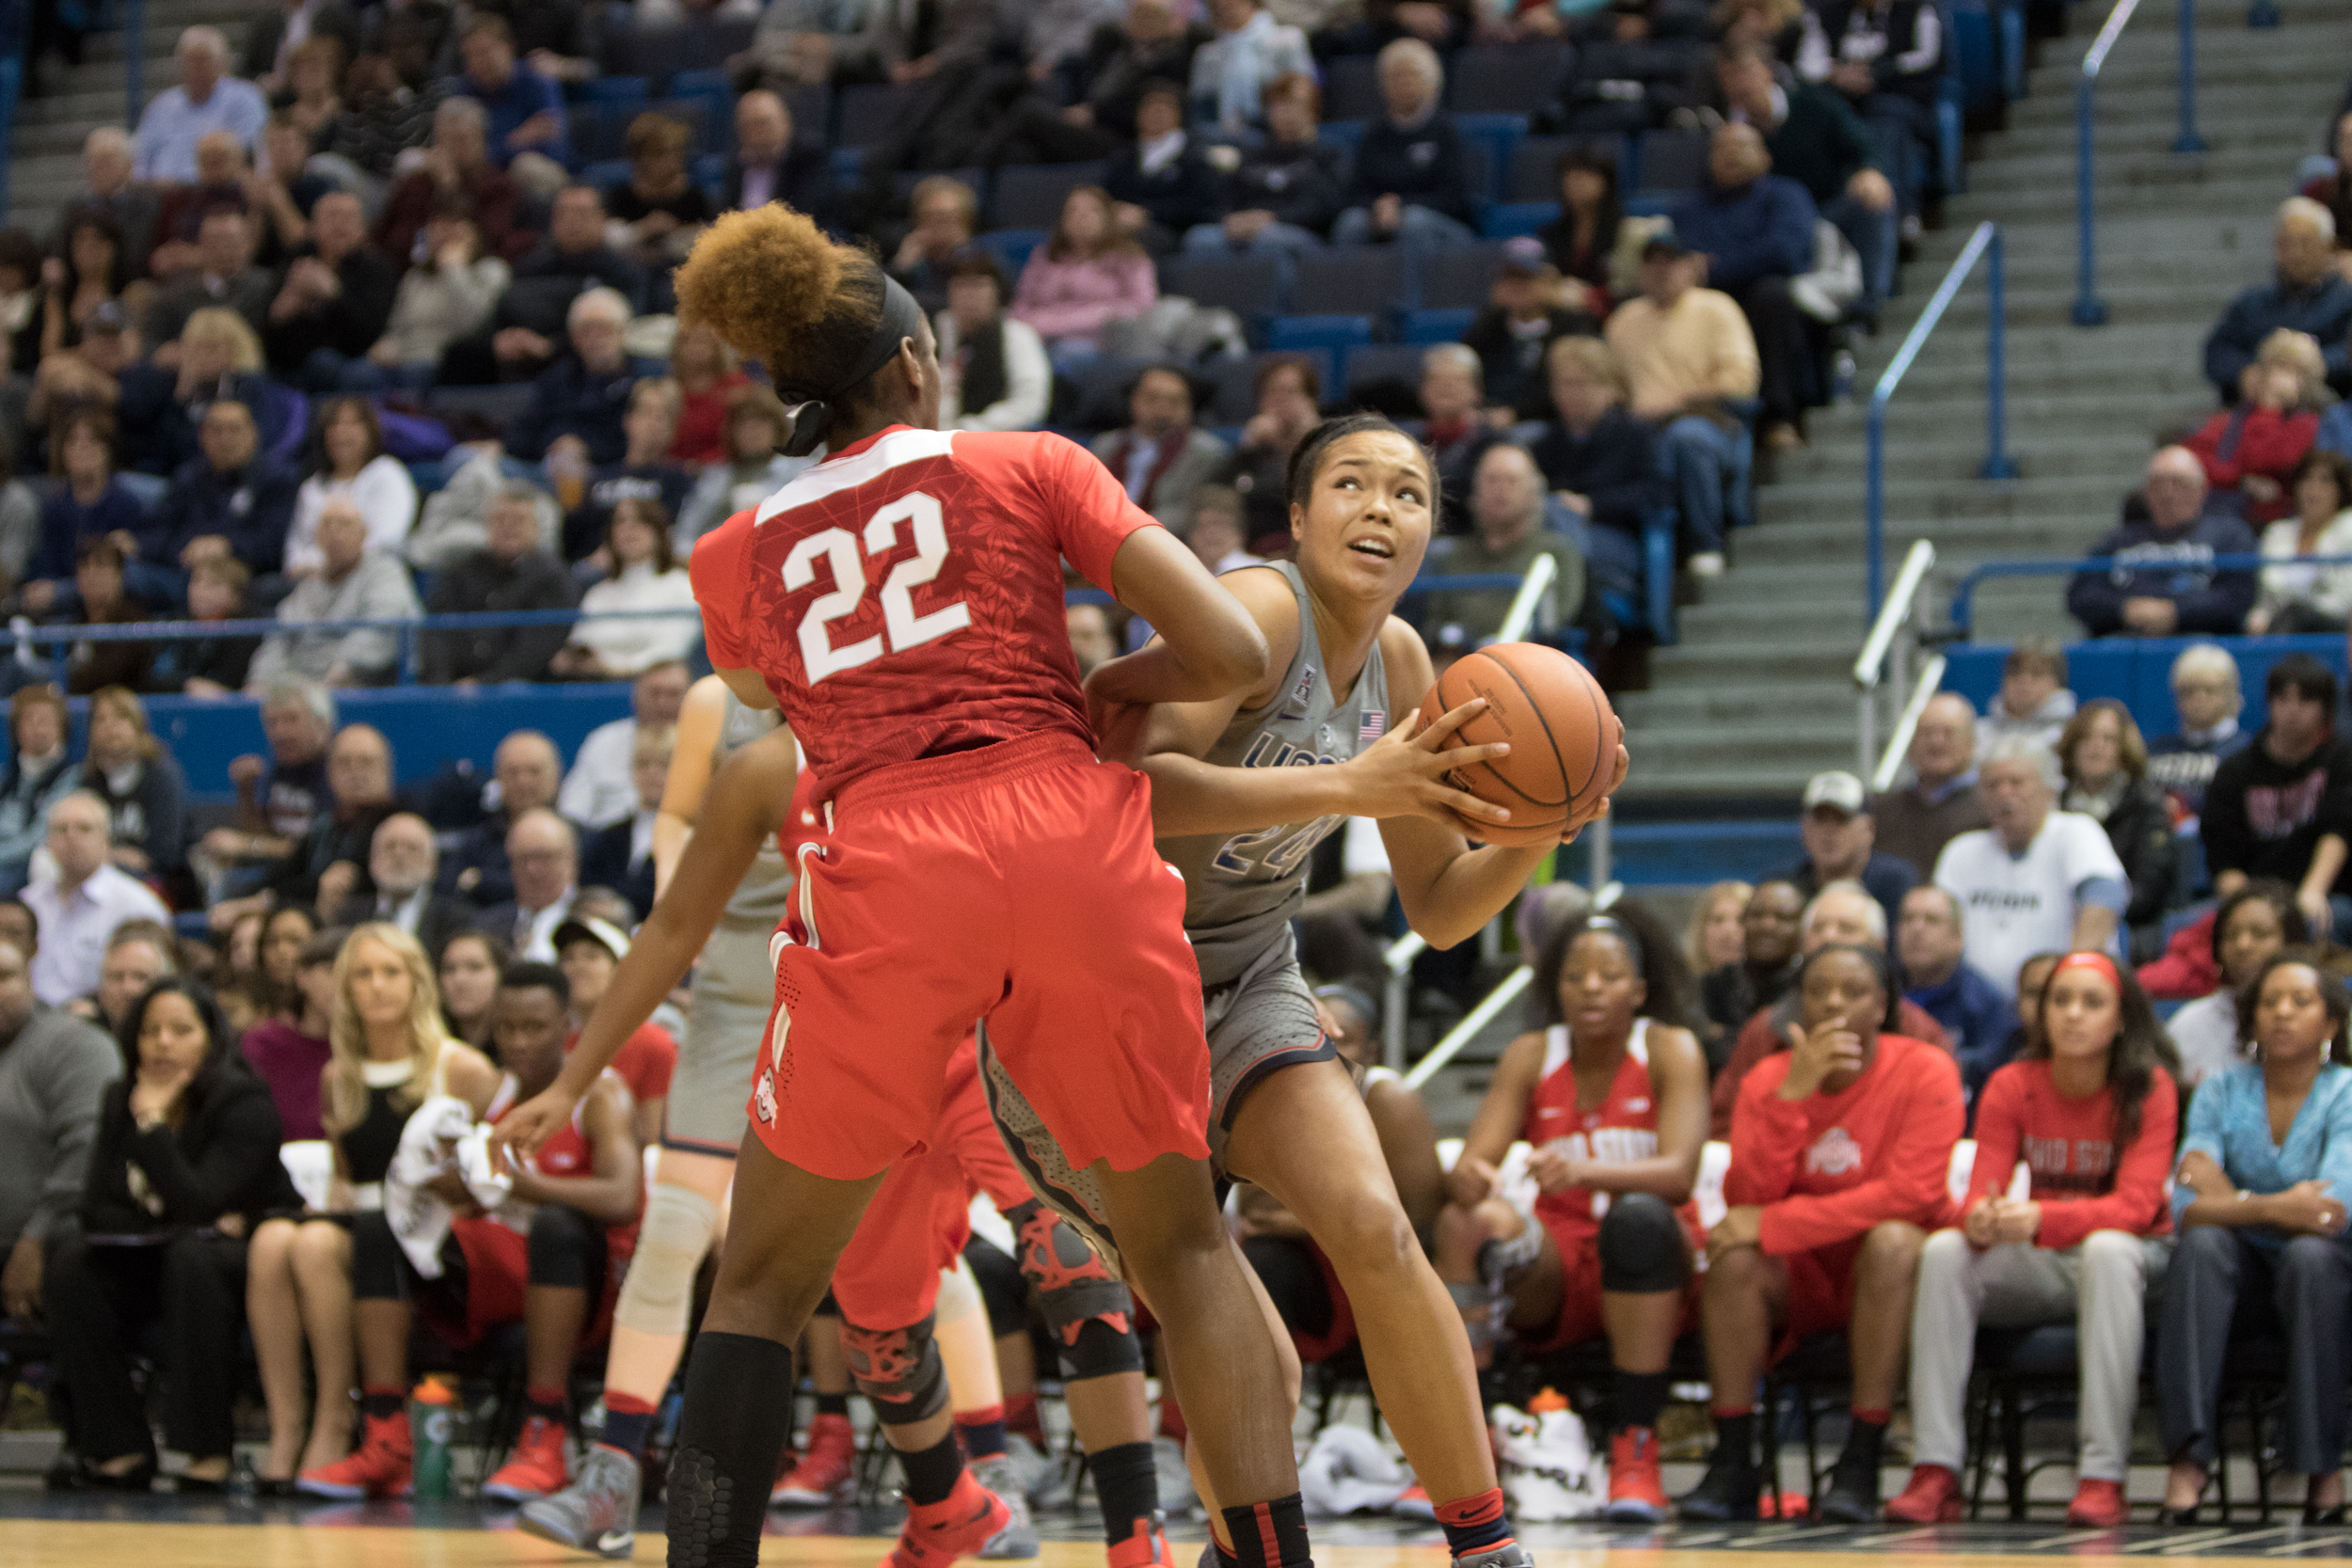 UConn's Napheesa Collier drives towards the hoop in the Huskies' 82-63 win over No. 12 Ohio State on Monday, Dec. 19, 2016 at the XL Center in Hartford, Connecticut.